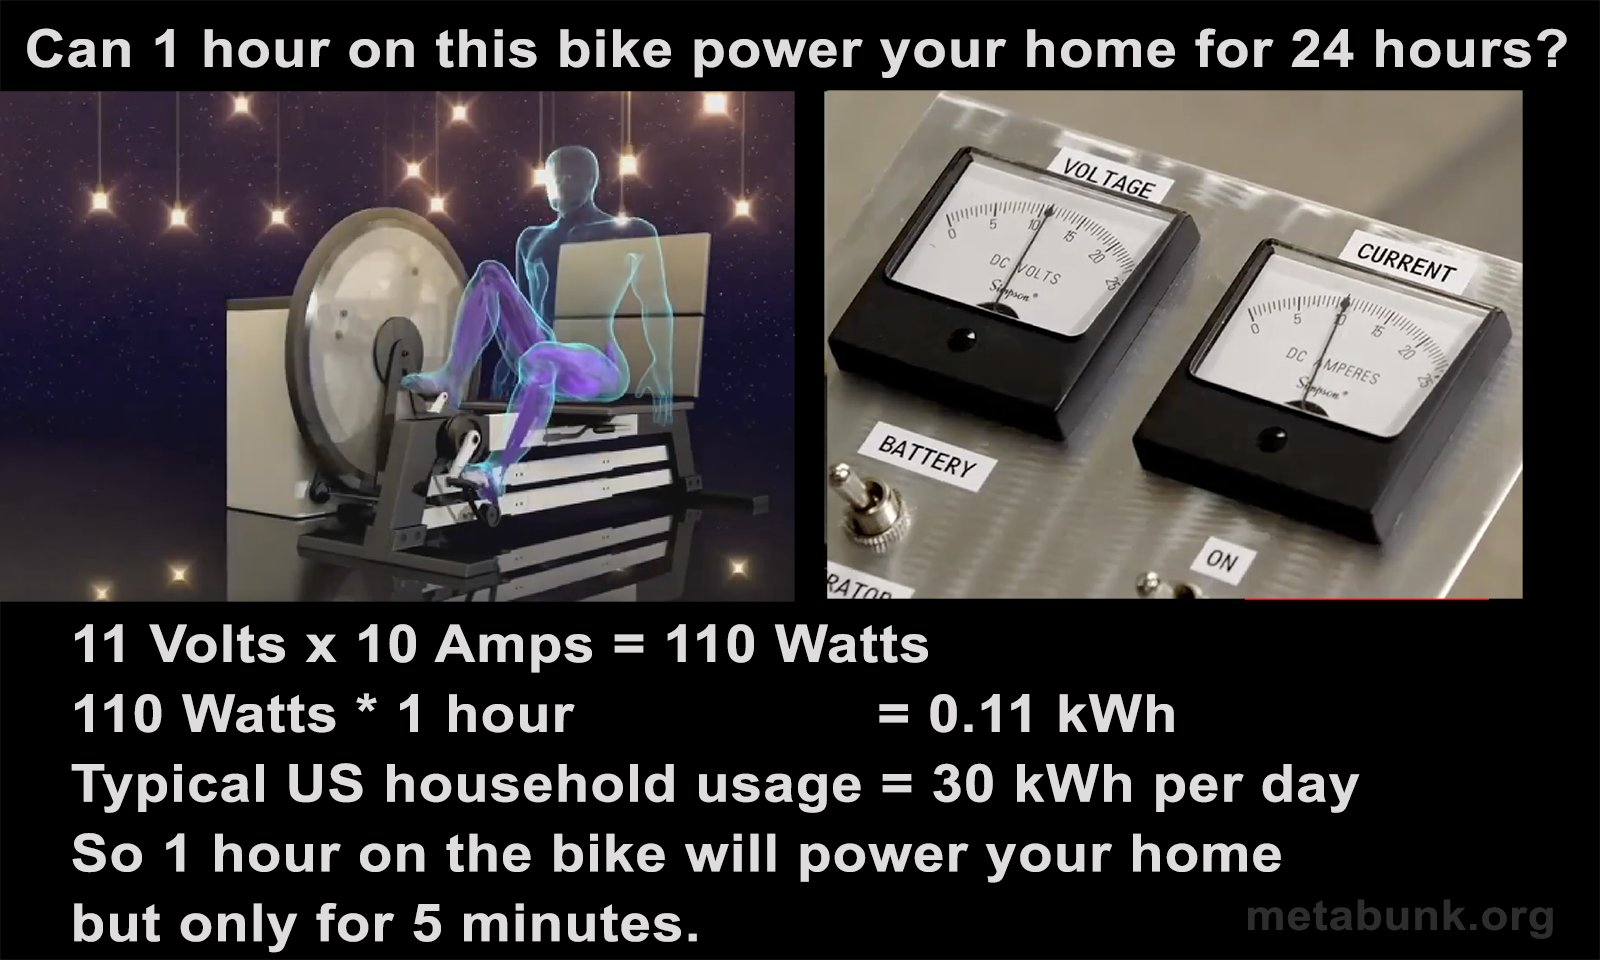 Debunked: 1 Hour on this Bike Can Power Your Home For 24 hours [More ...